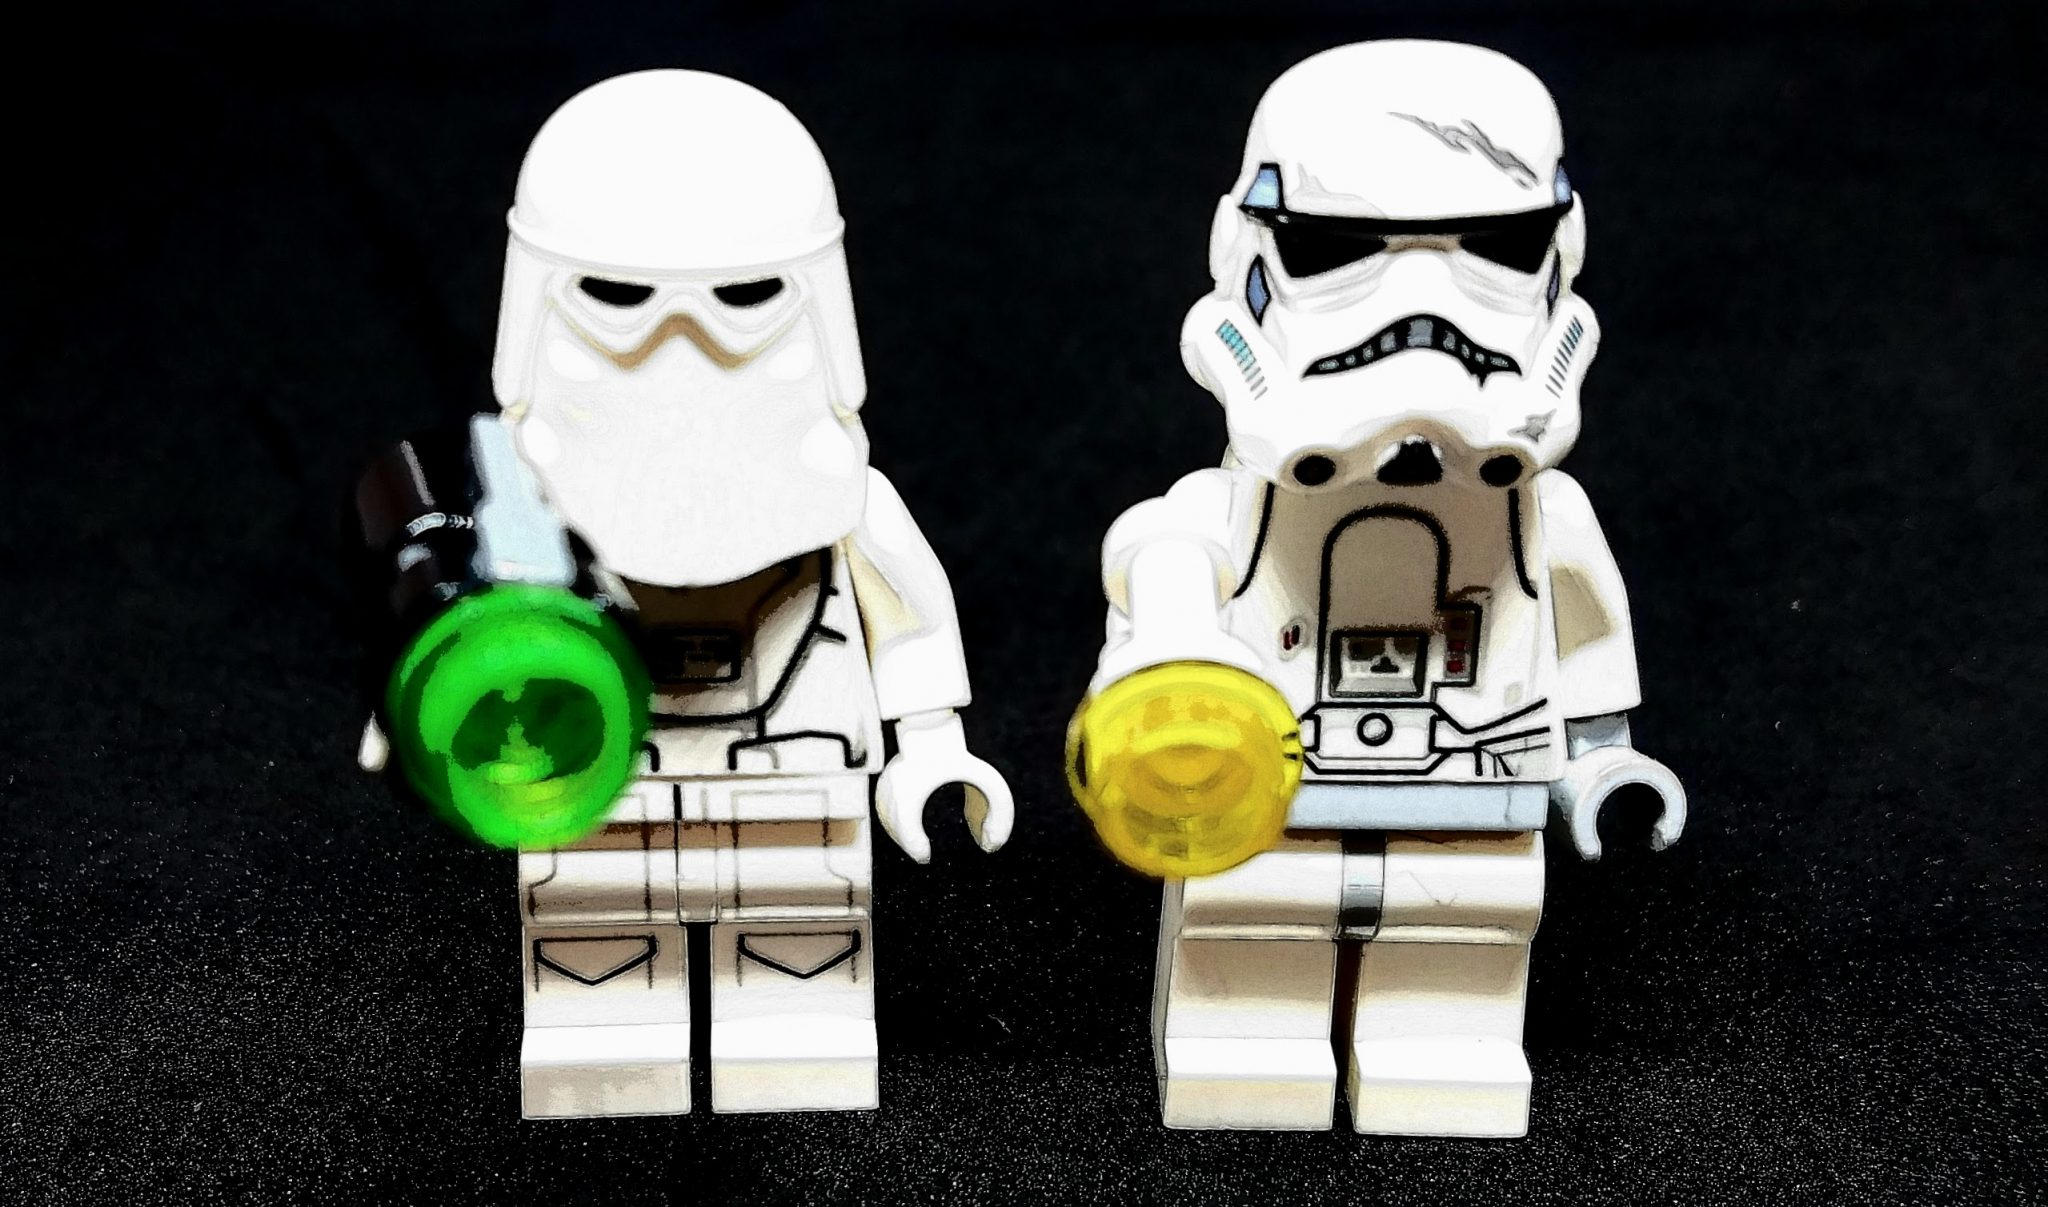 Lego Storm Trooper figures